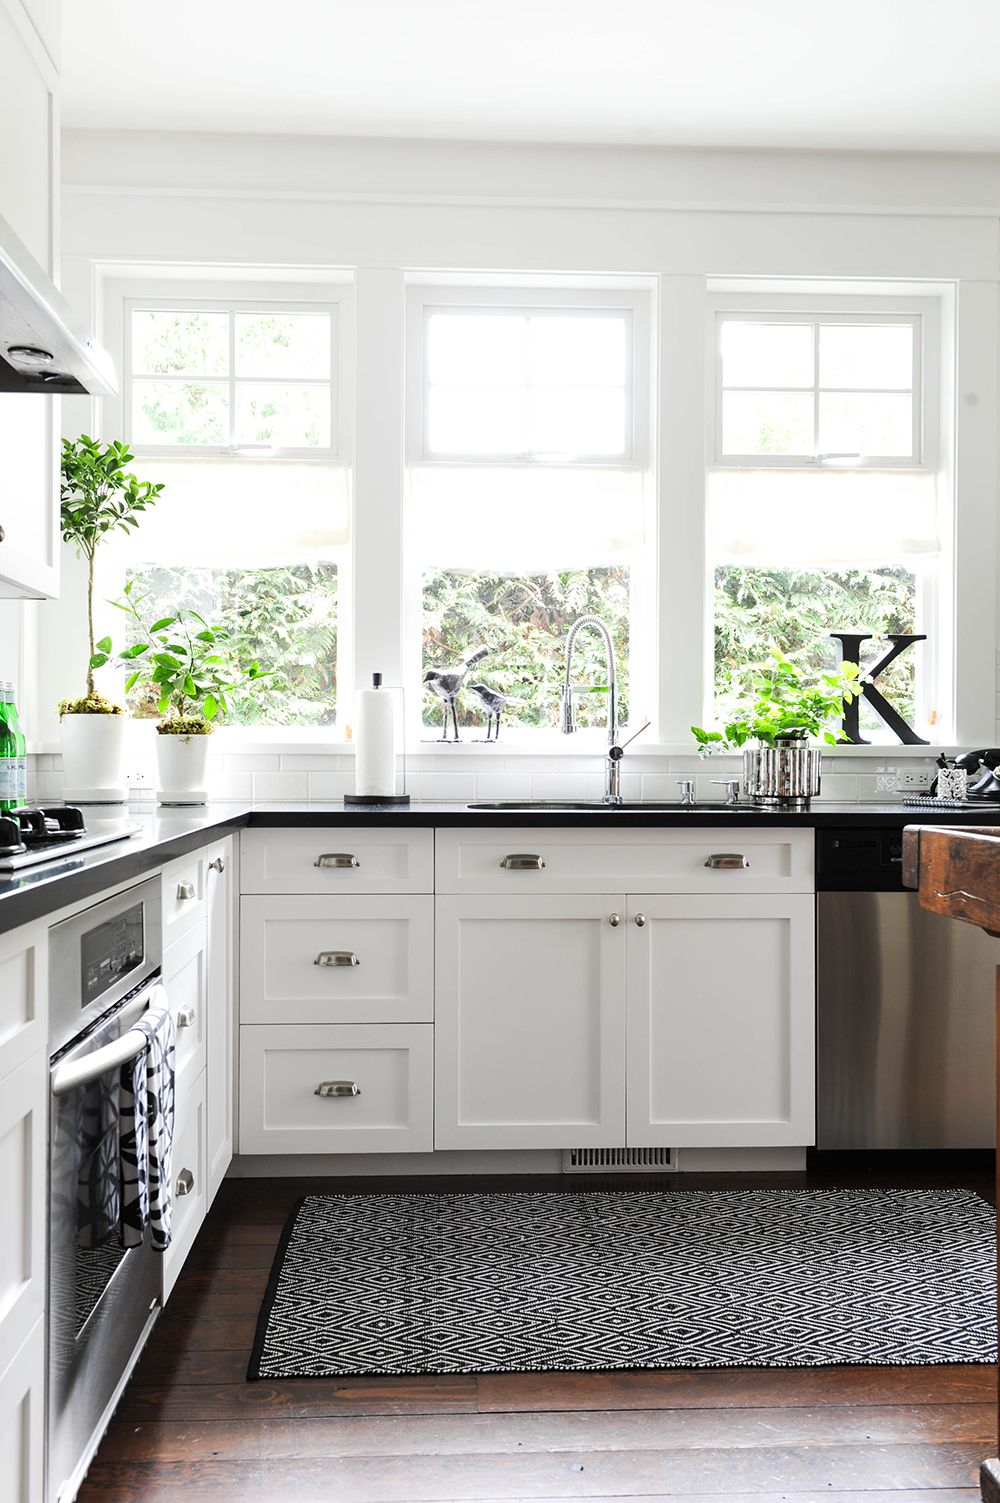 windows over kitchen sink | For the Home | Pinterest | Cocinas ...